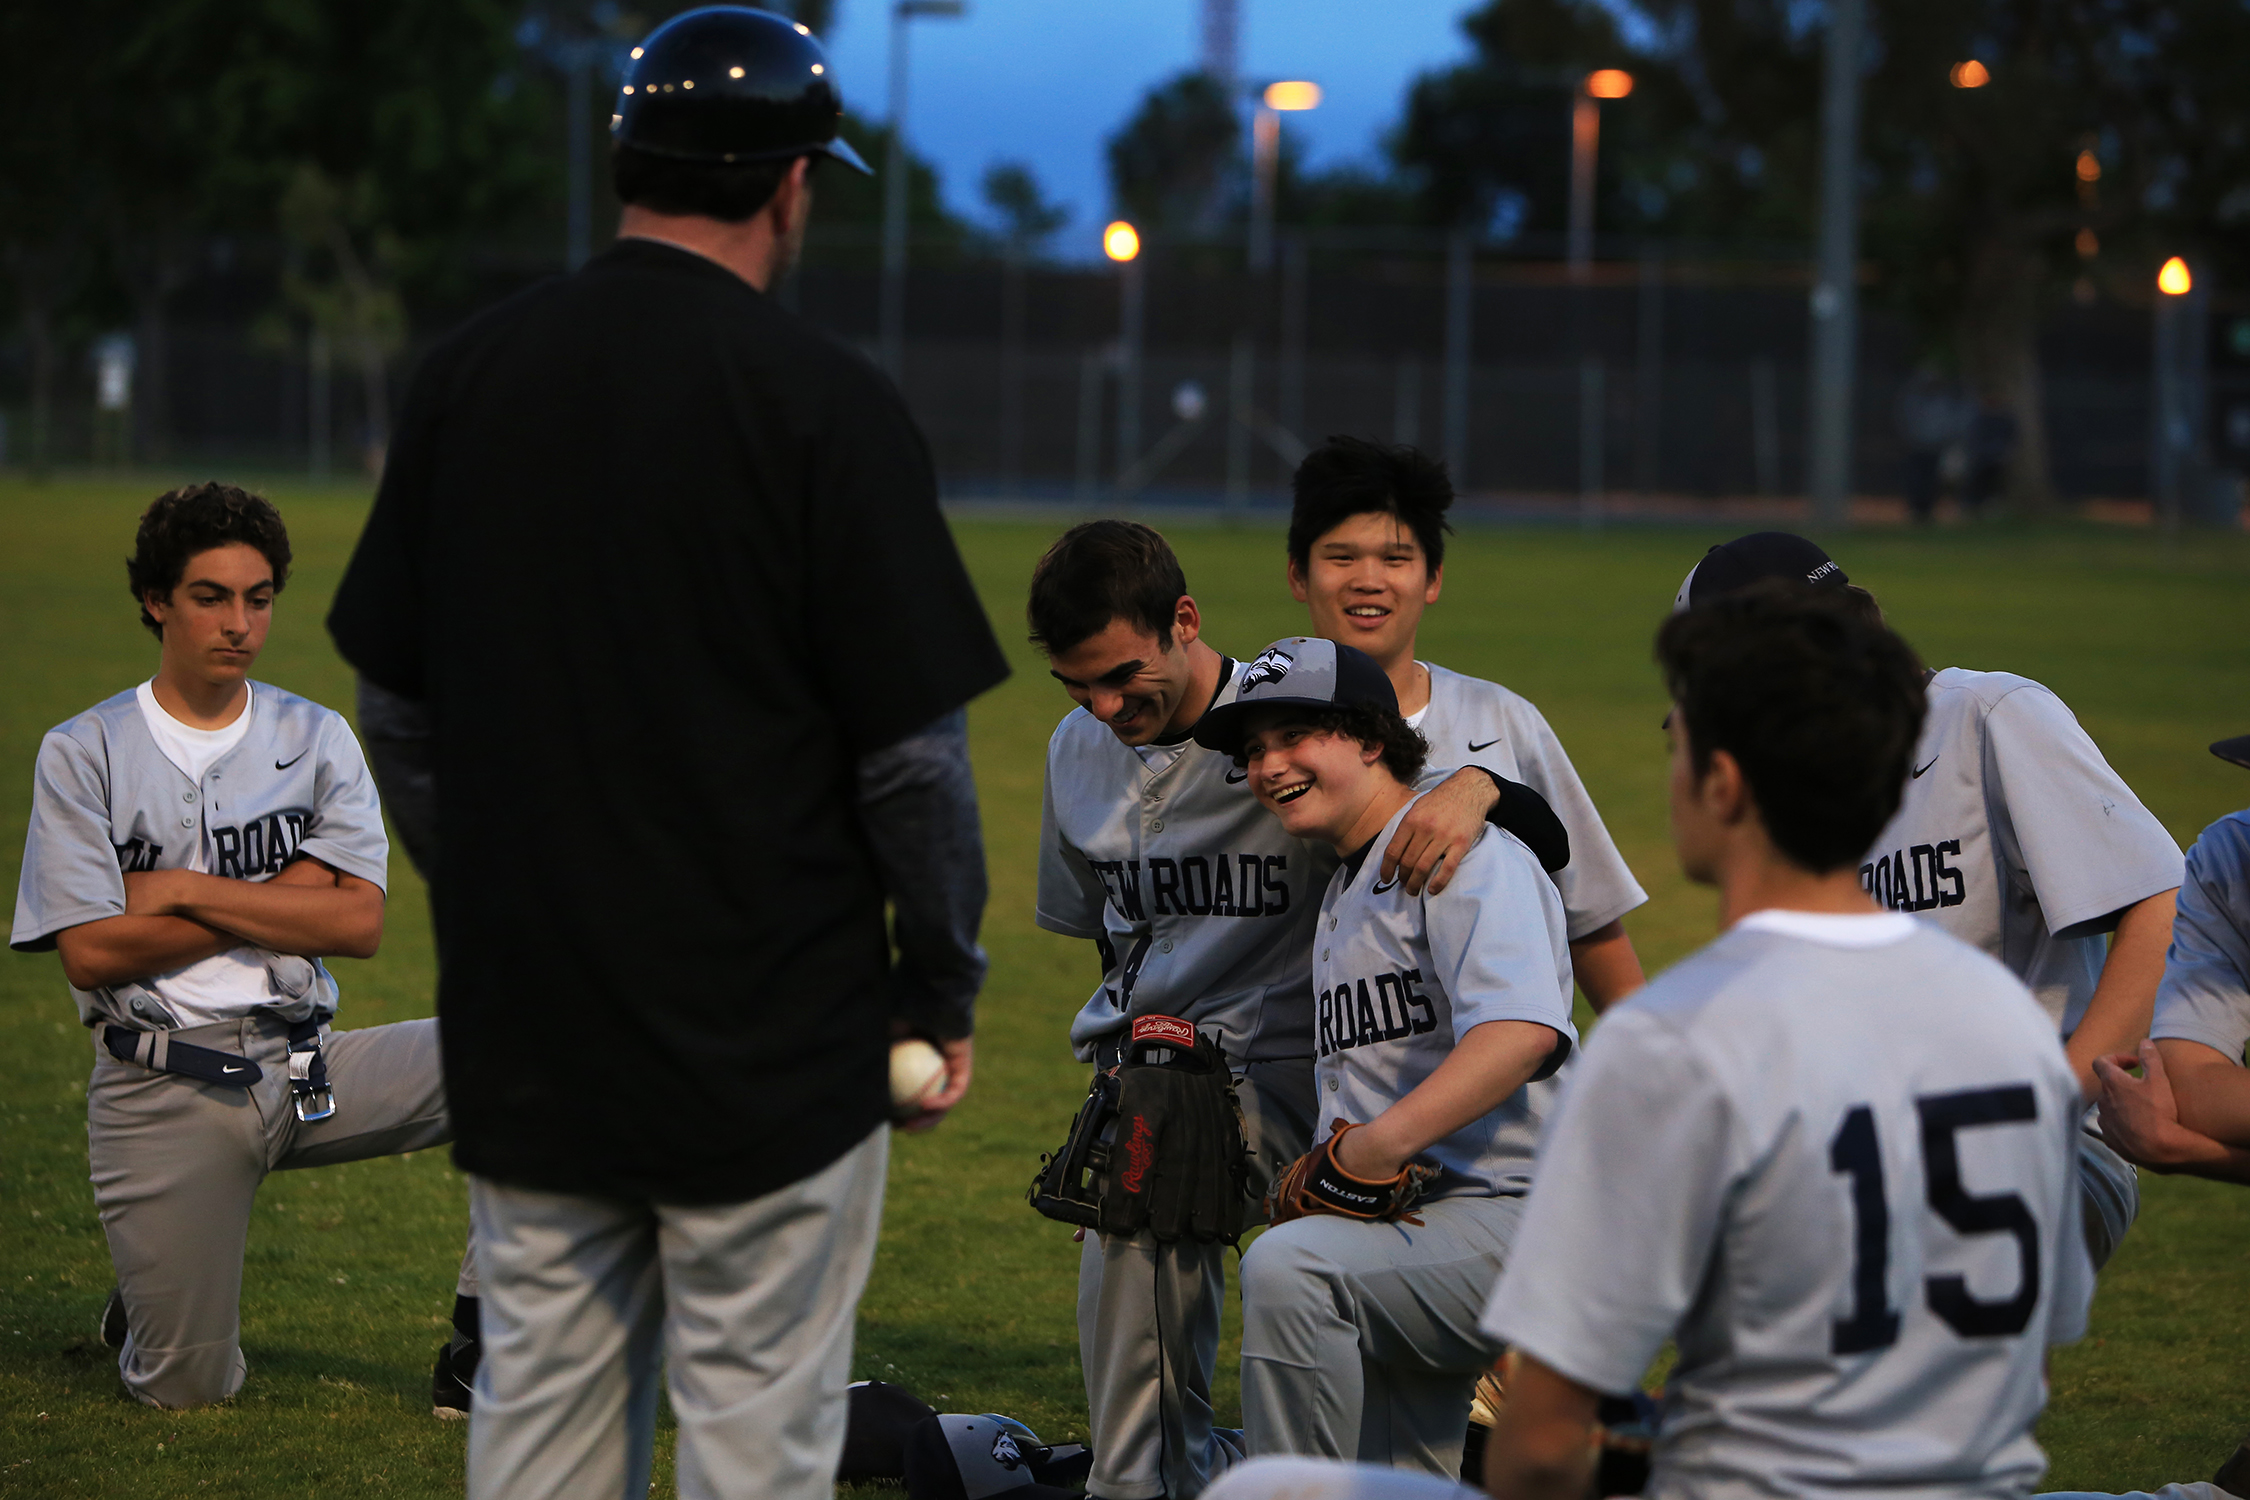 """After struggling in middle school to belong, Hofheimer, center, has found a home with his team. """"I have the baseball team, I have my friends whom I hang out with on a regular basis. I'm friends with a fair amount of people now, I think.""""© Gail Fisher for ESPN"""